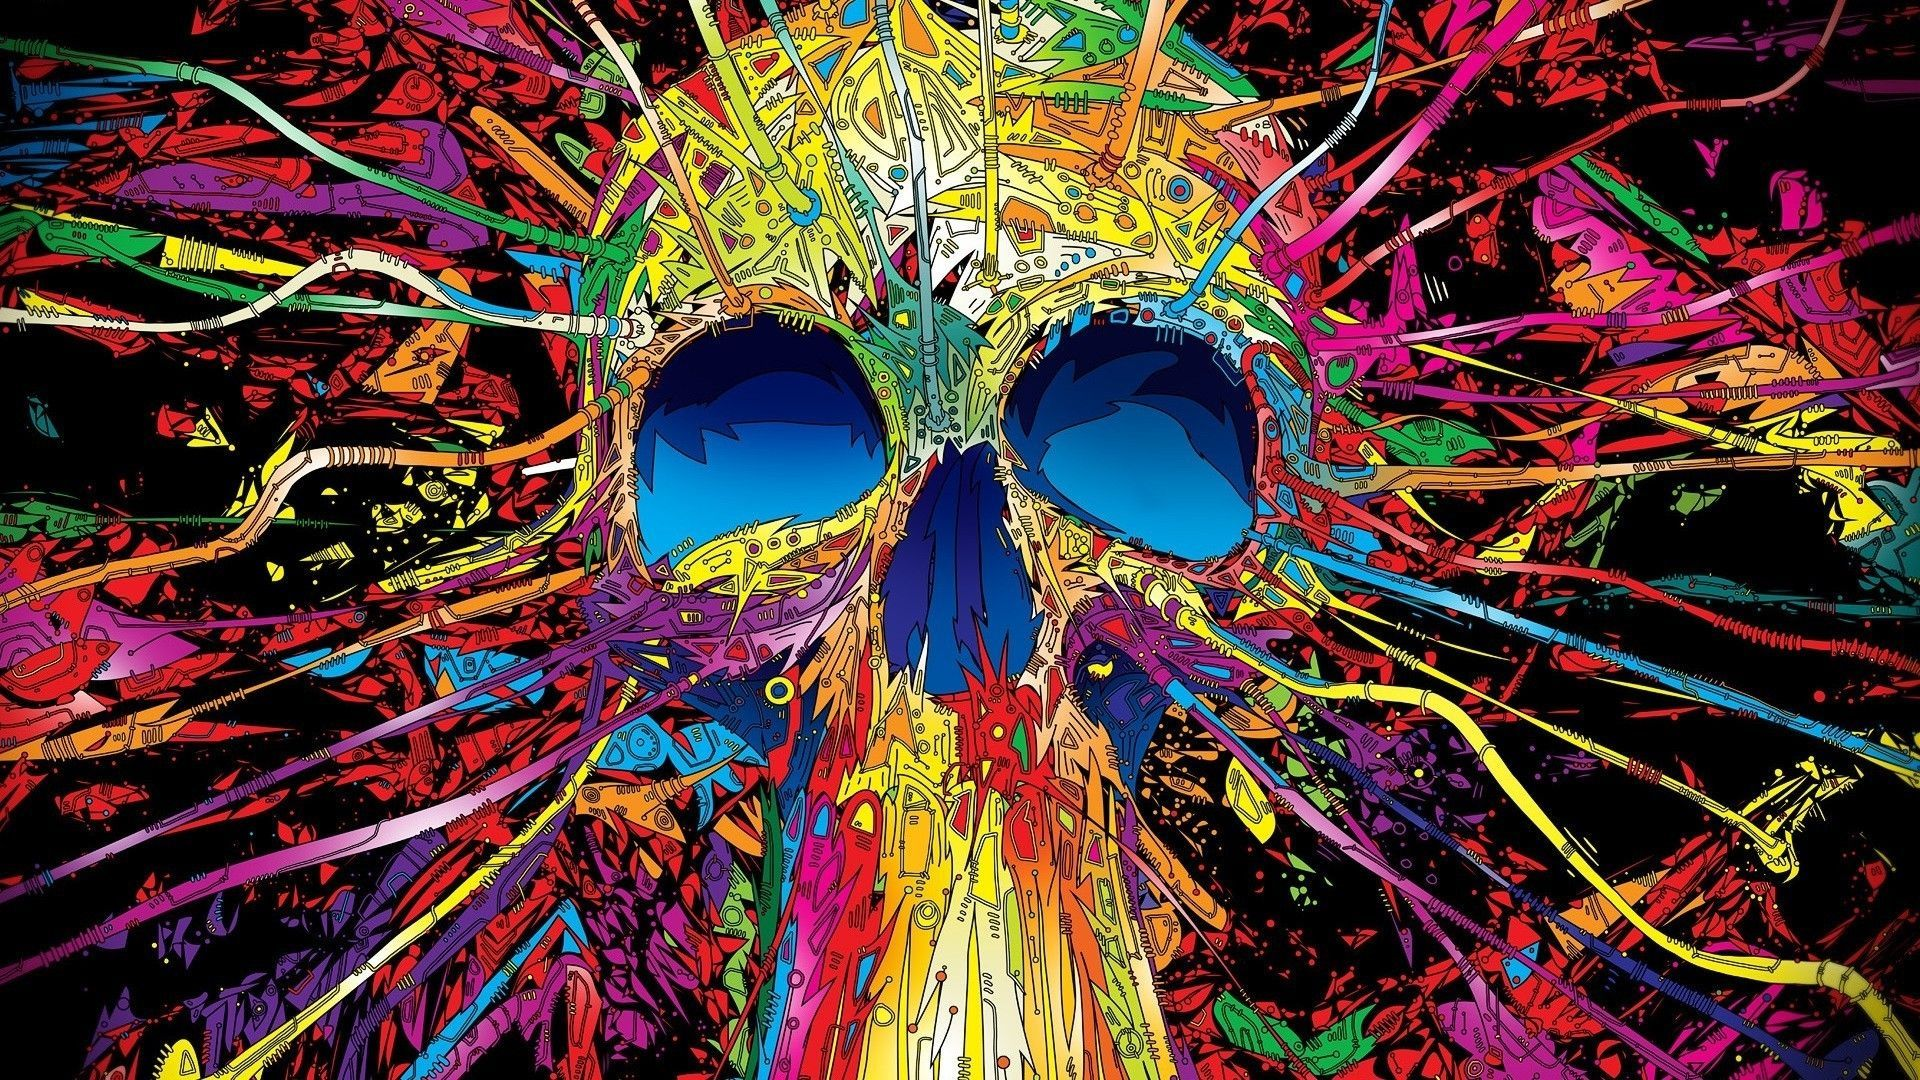 1920x1080 Psychedelic Weed Wallpaper 7 2014 Hd | psychedilics | Pinterest .